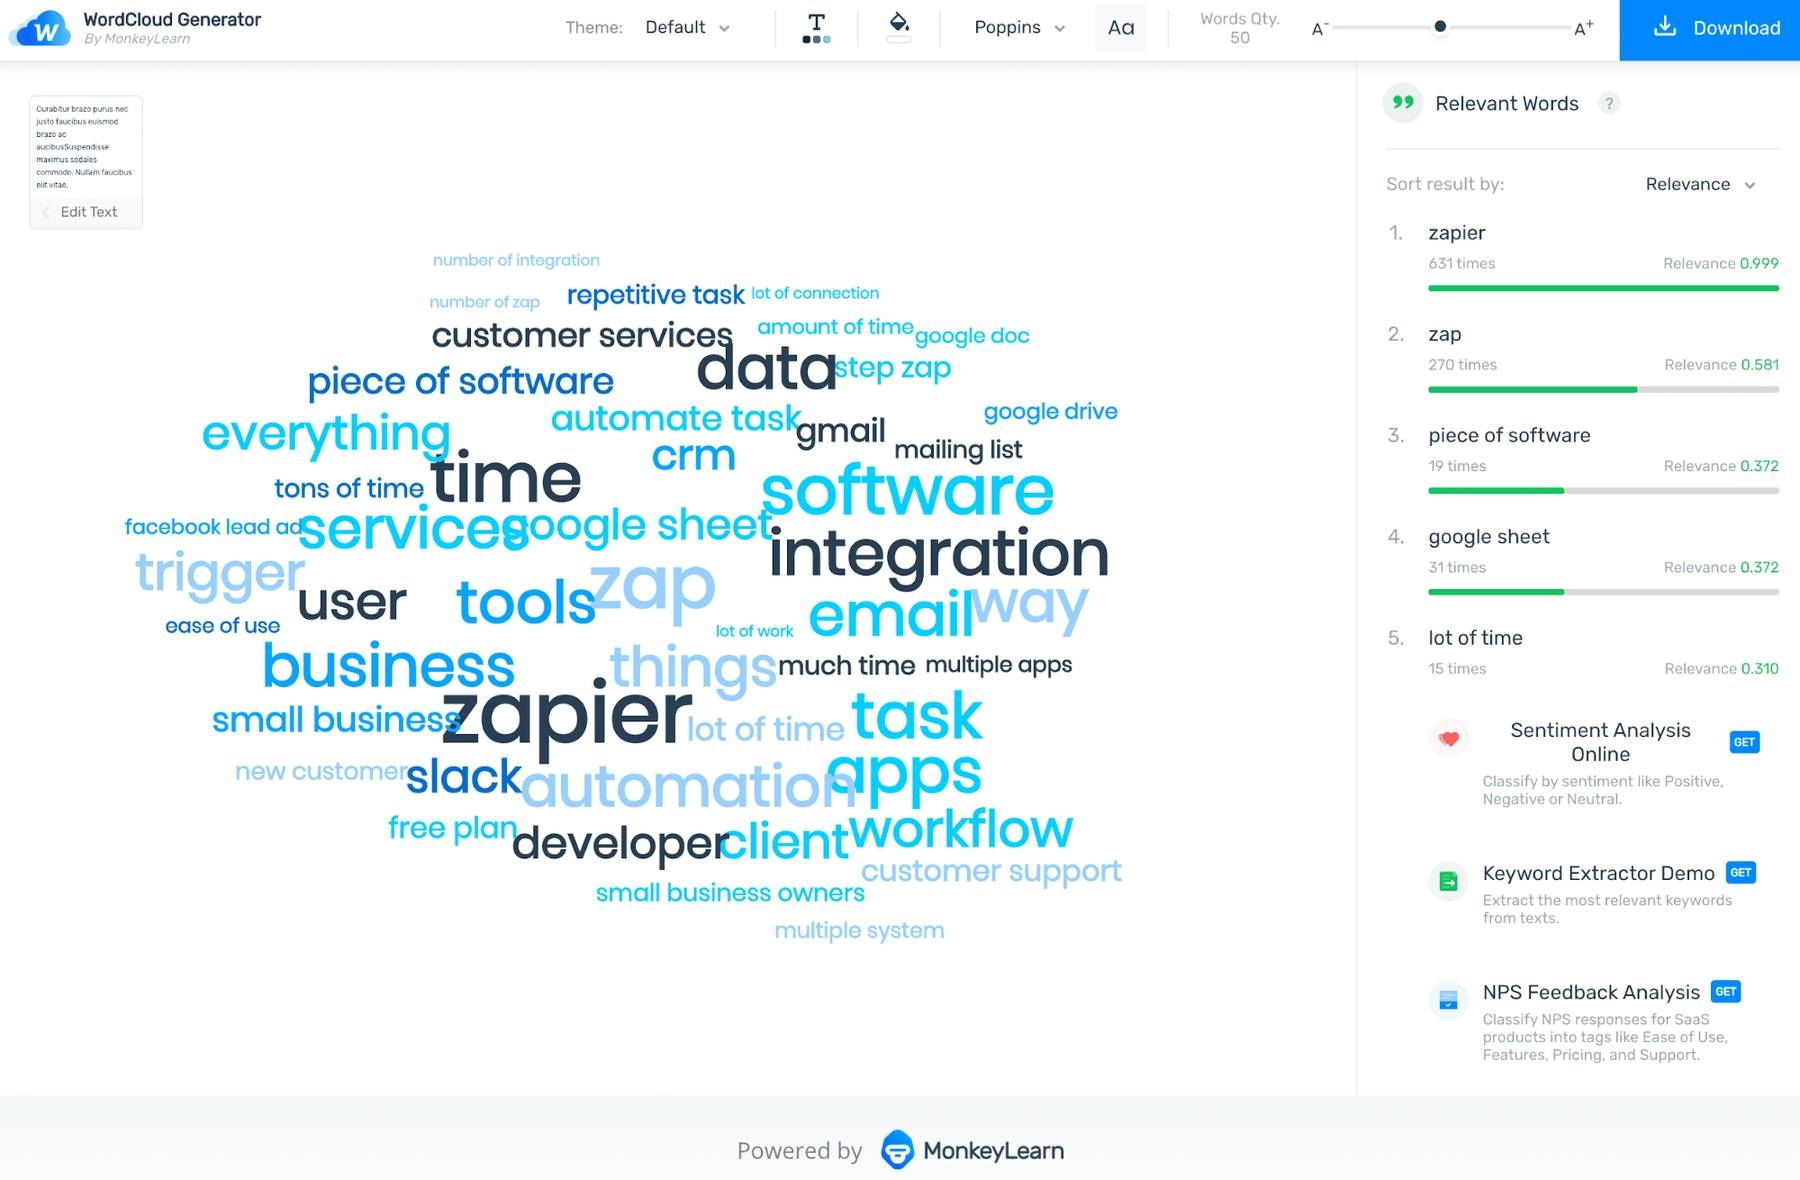 MonkeyLearn's word cloud generator showing the word cloud created from Excel data